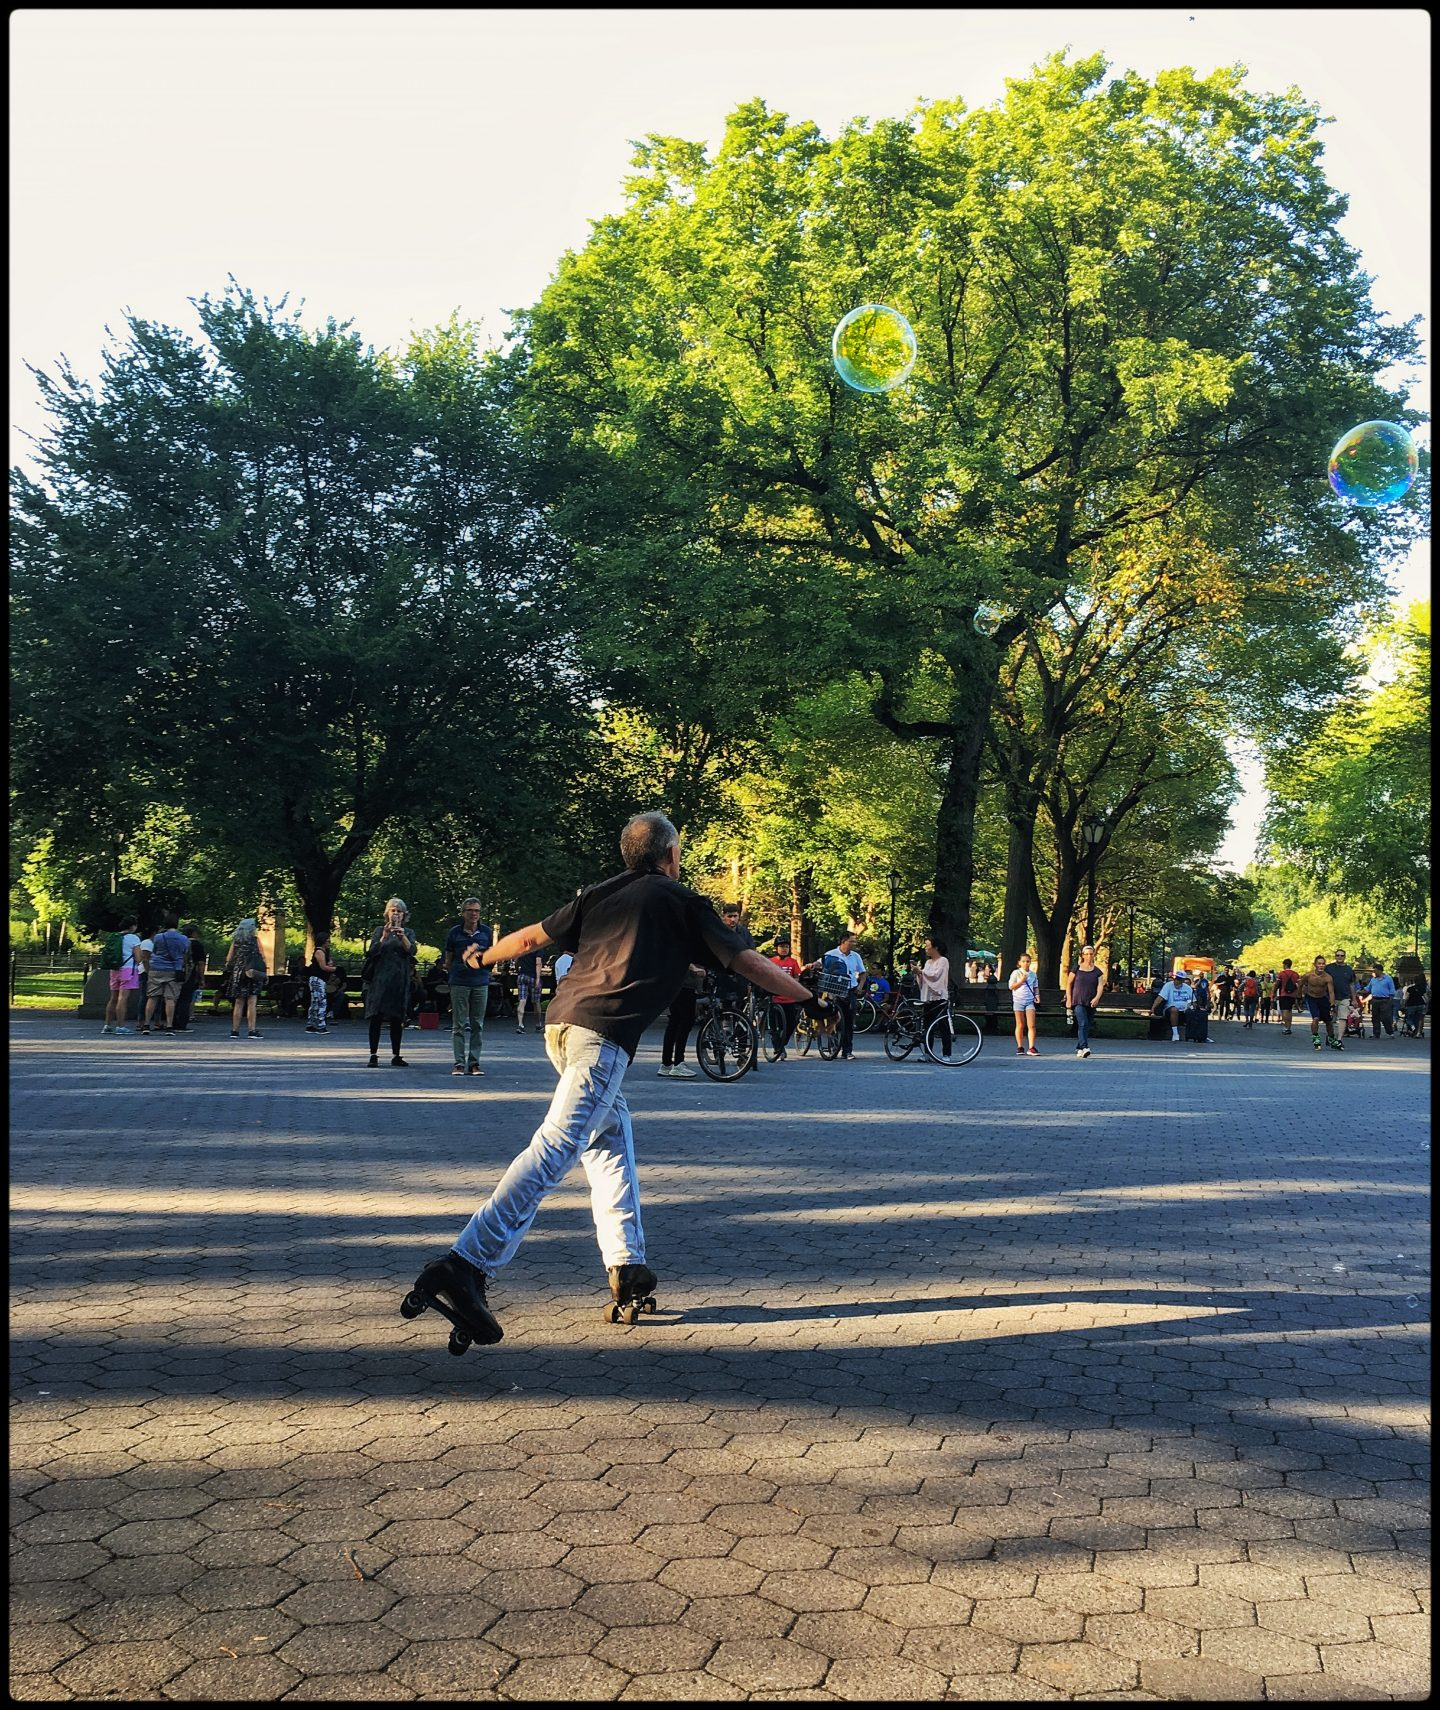 Guy dancing in the Park on rollerblades